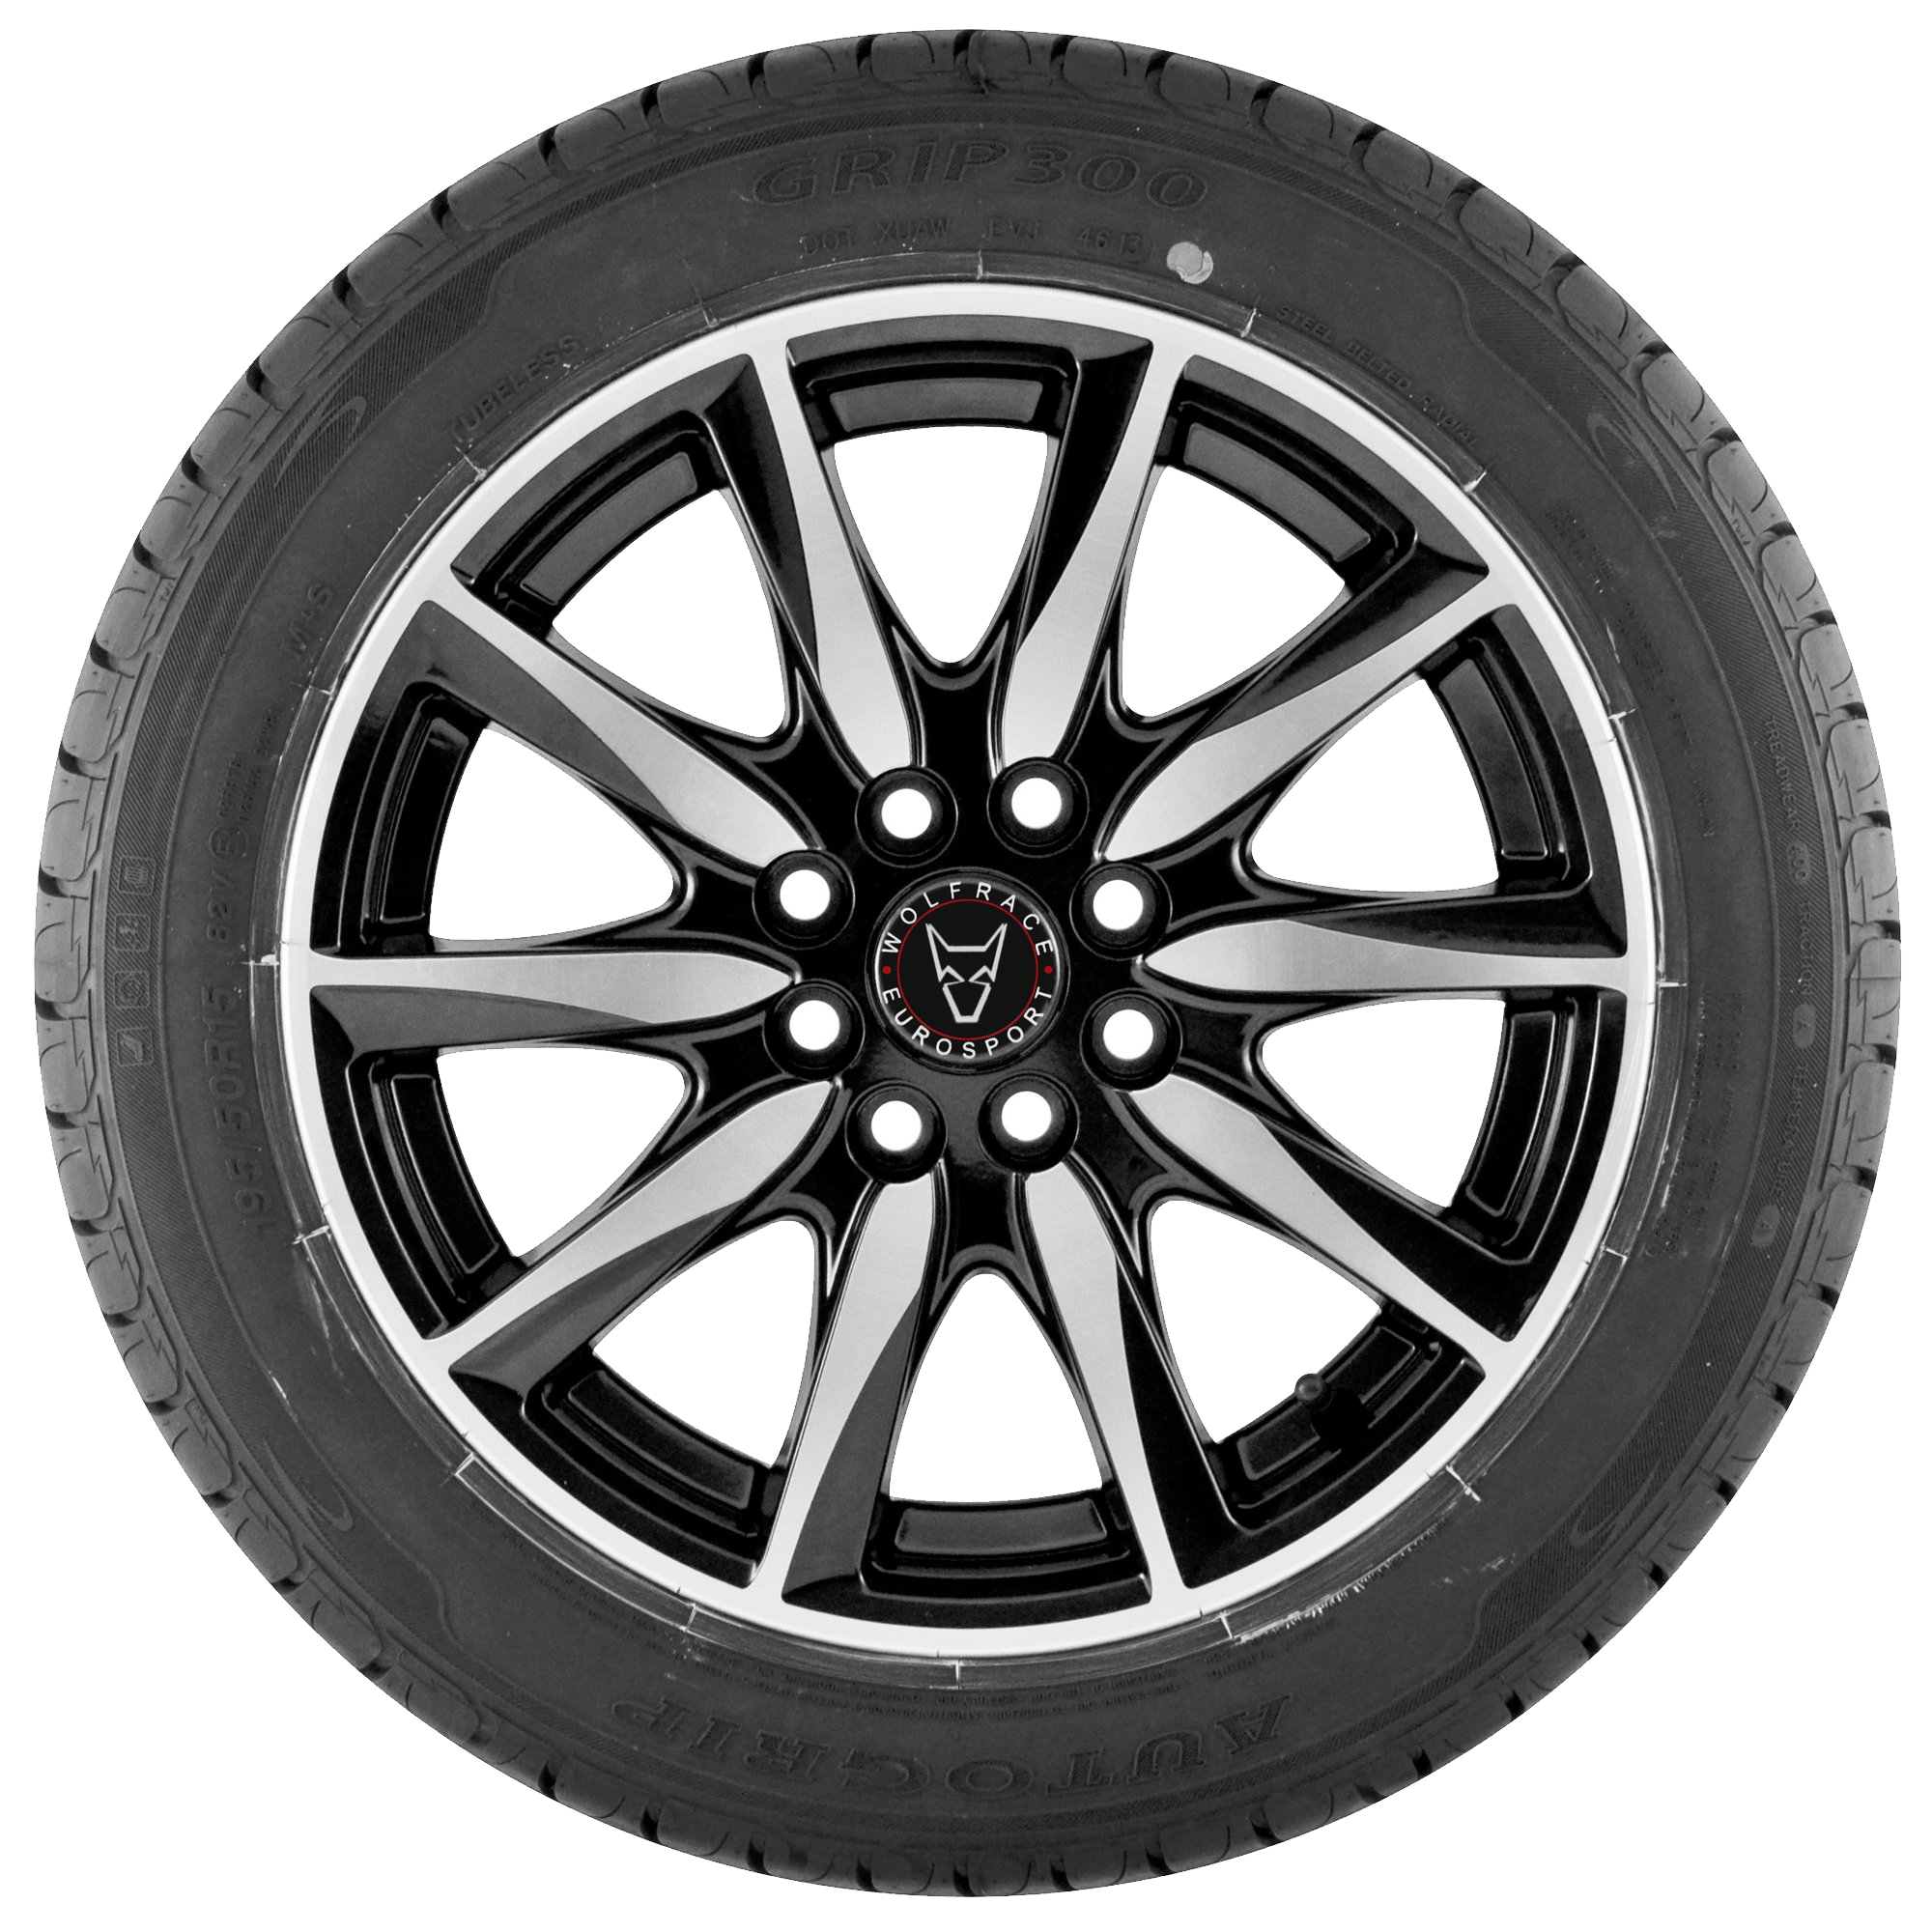 Car wheels clipart black and white Car Wheel PNG image black and white